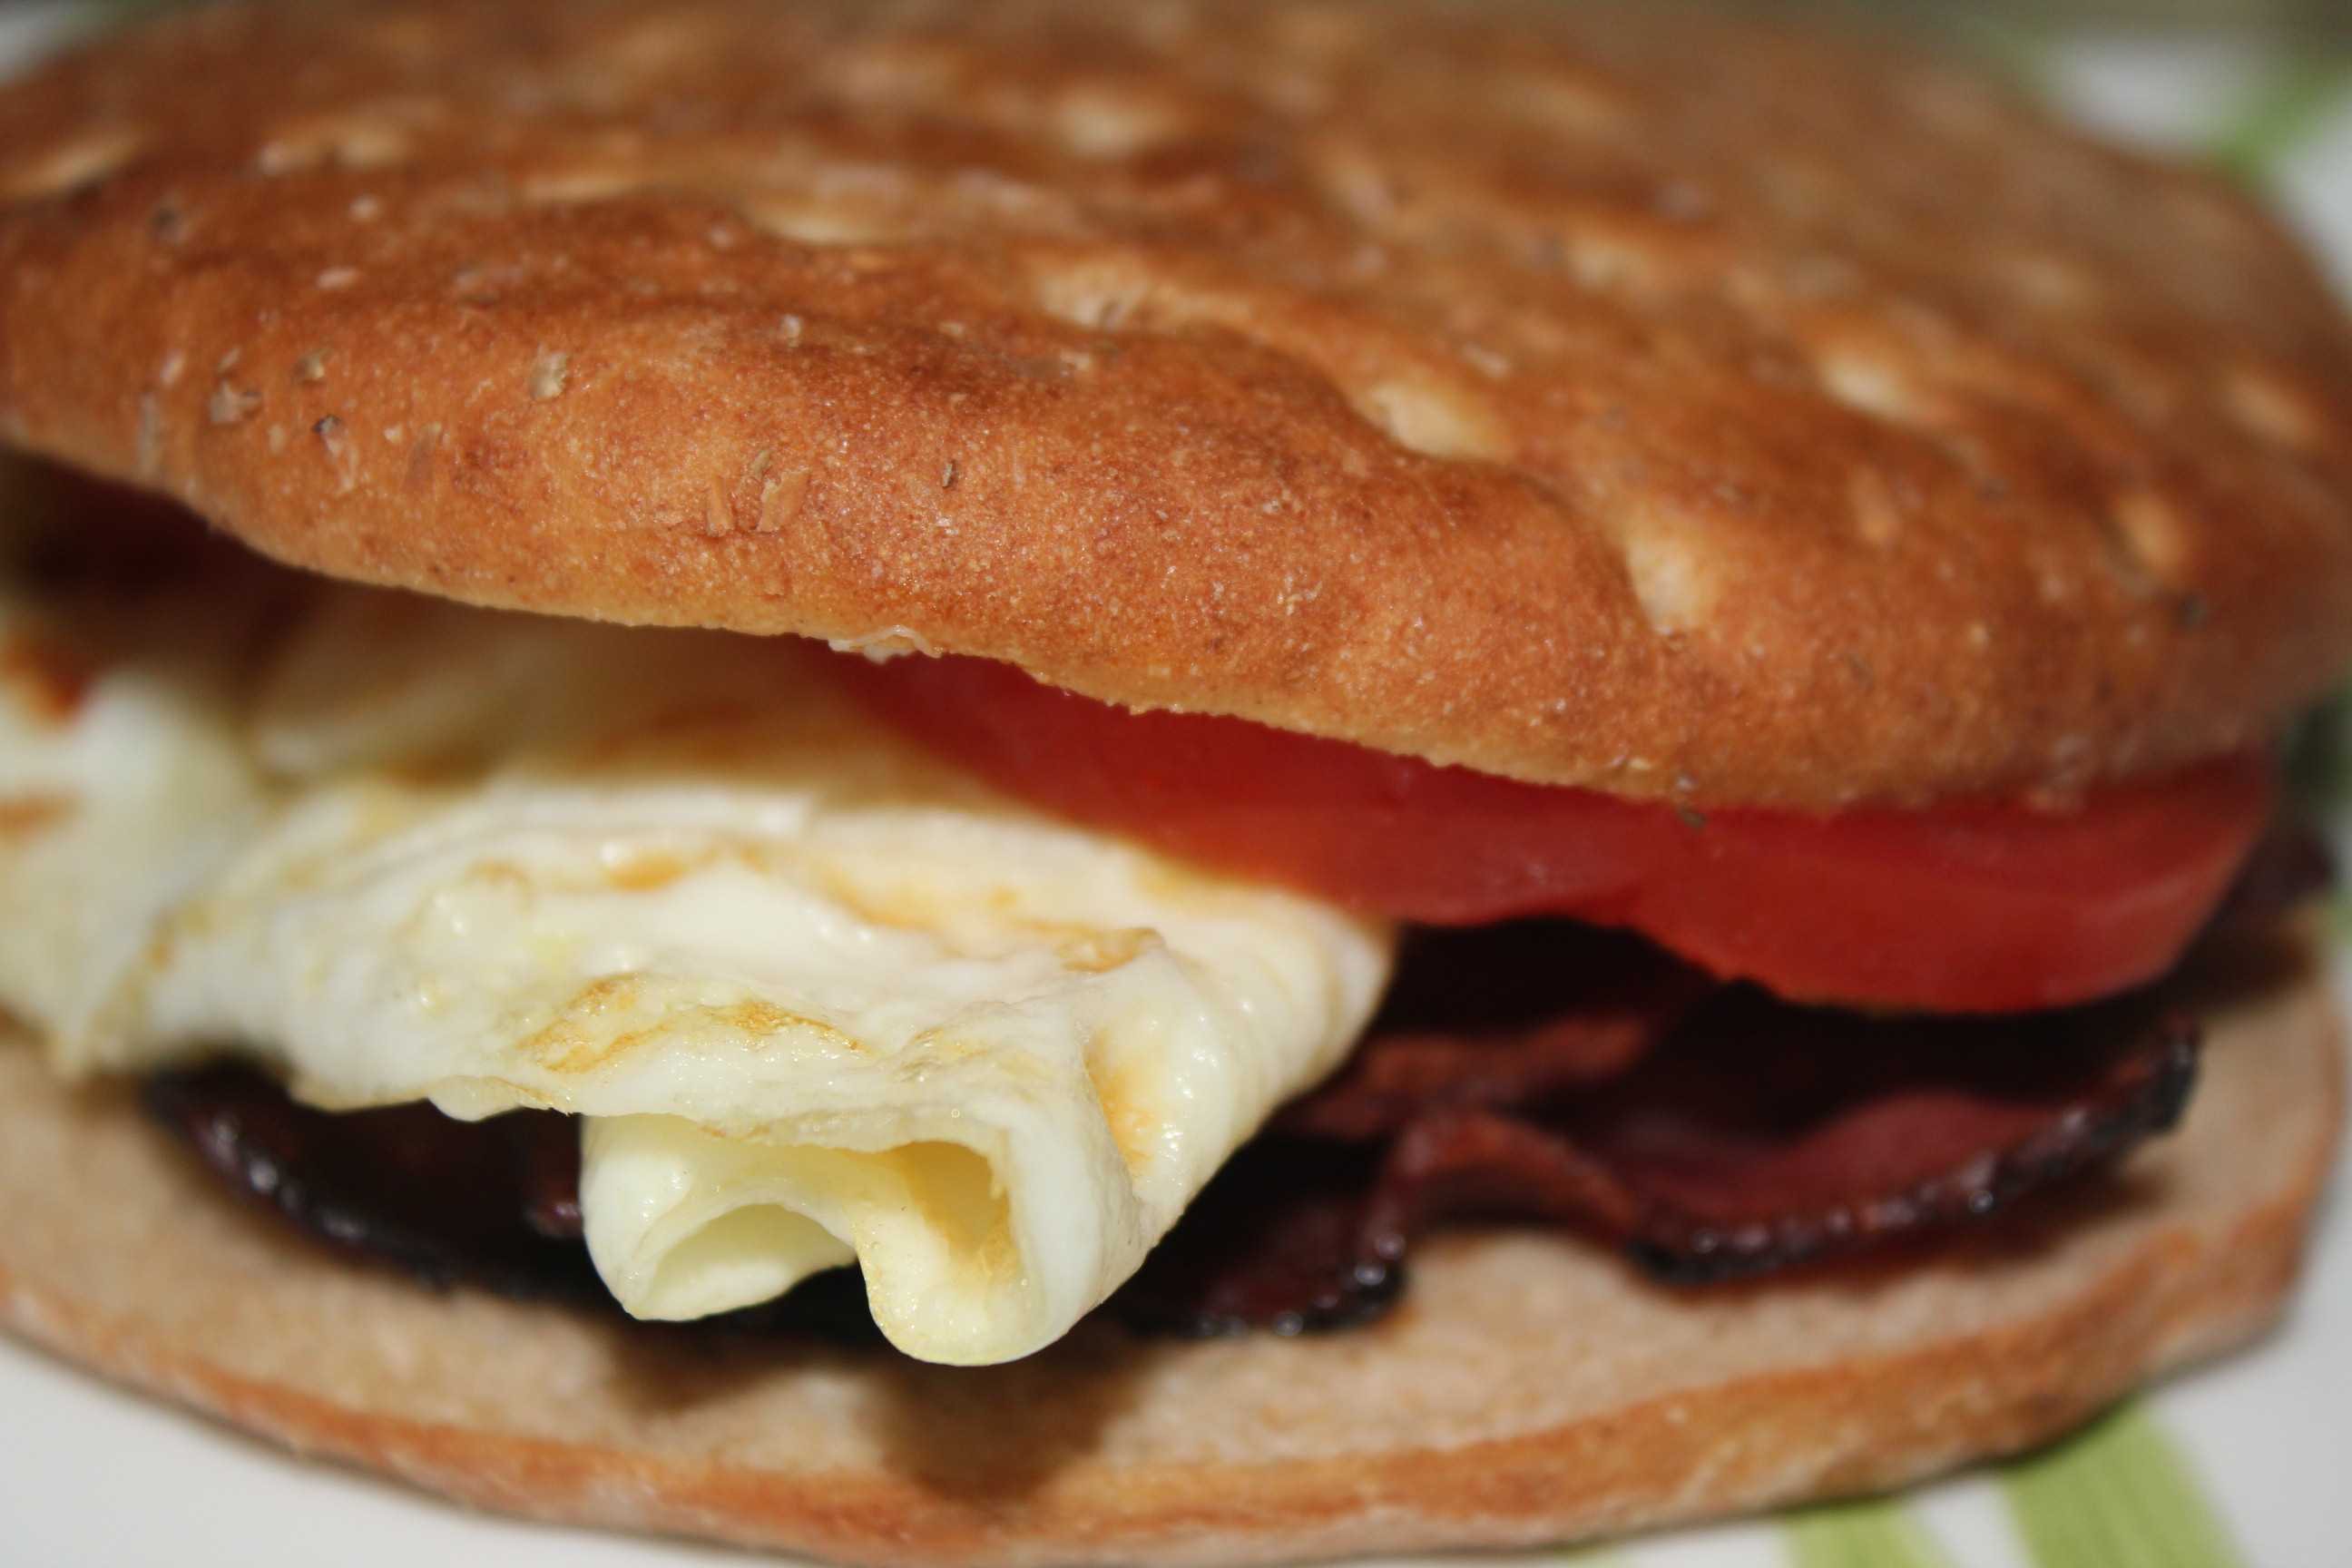 Be sure to check out my review post for more information on Sandwich ...